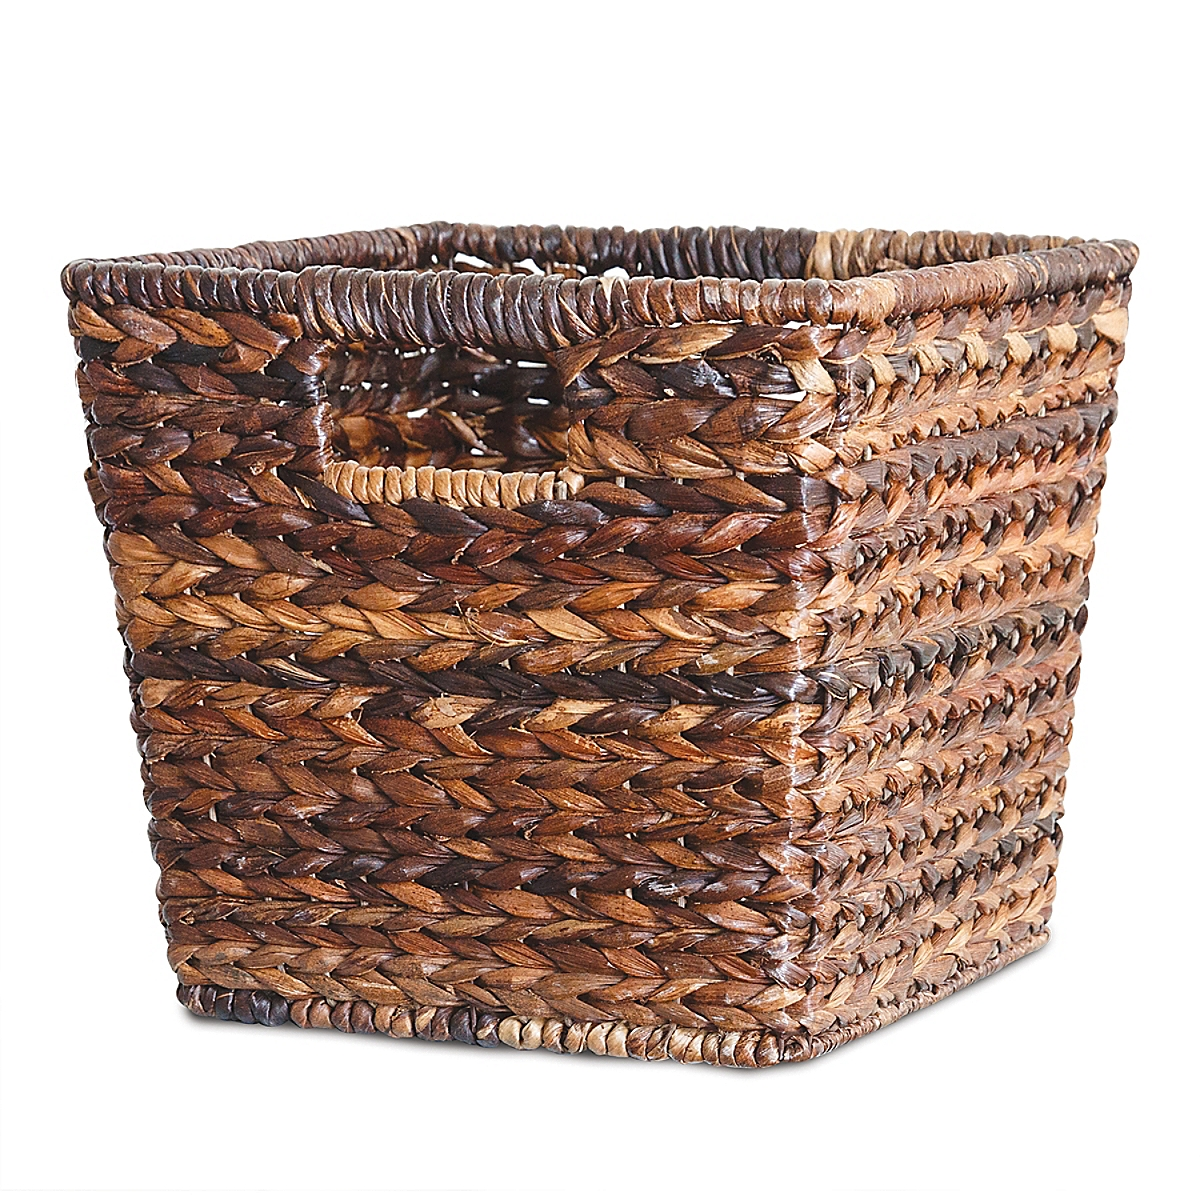 Stow-Away Basket - Coffee